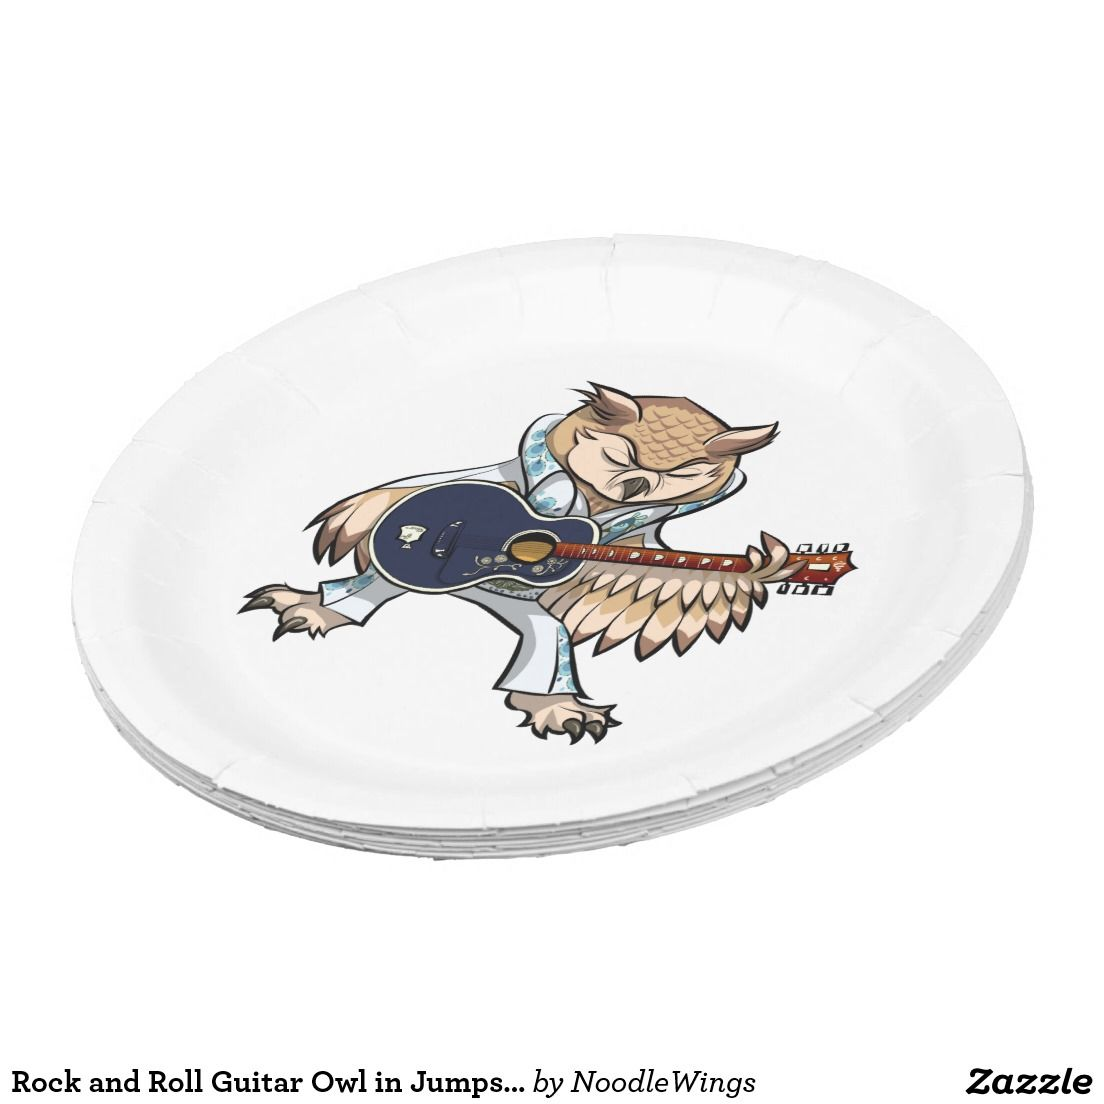 Rock and roll guitar owl in jumpsuit cartoon all party stuff